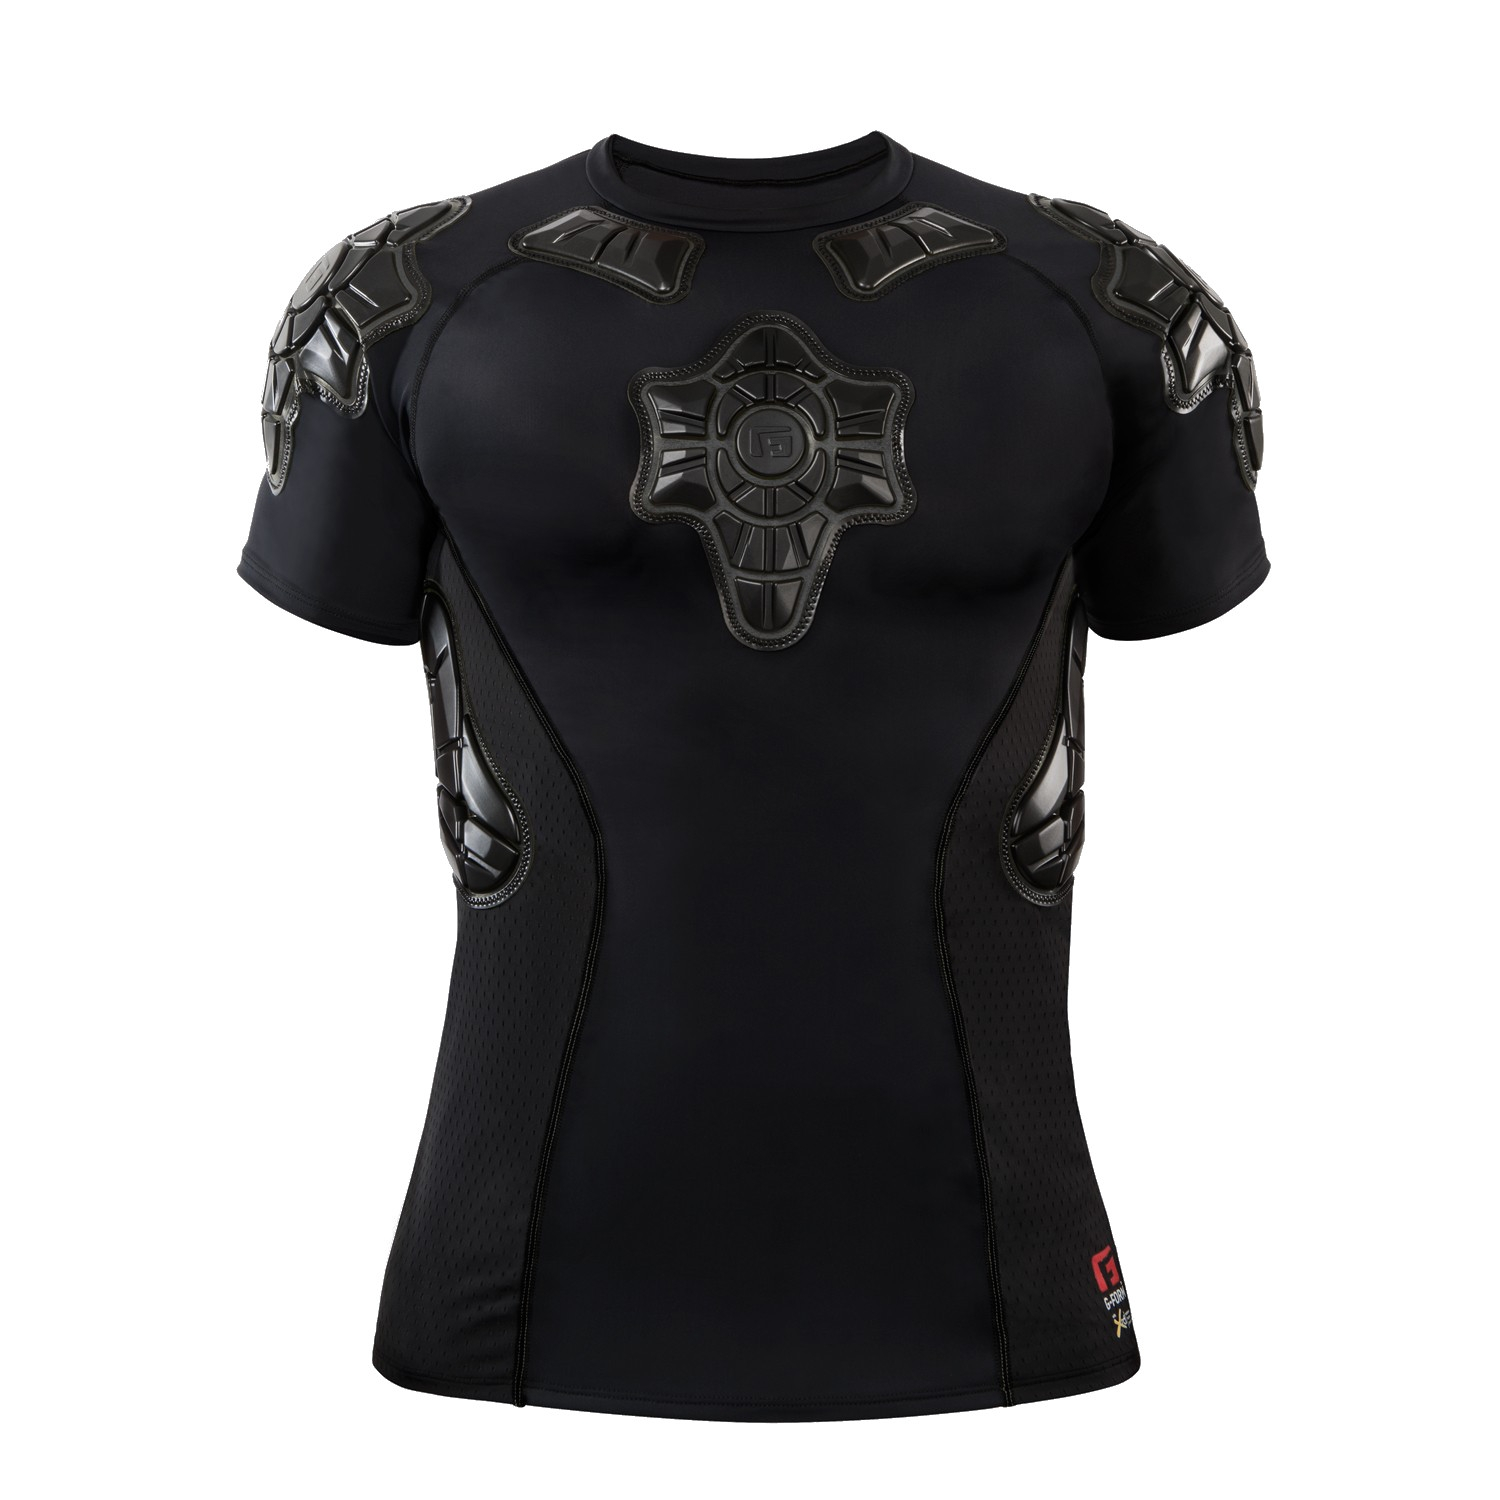 Tee-shirt de protection G-Form Pro-X Noir/Gris - S